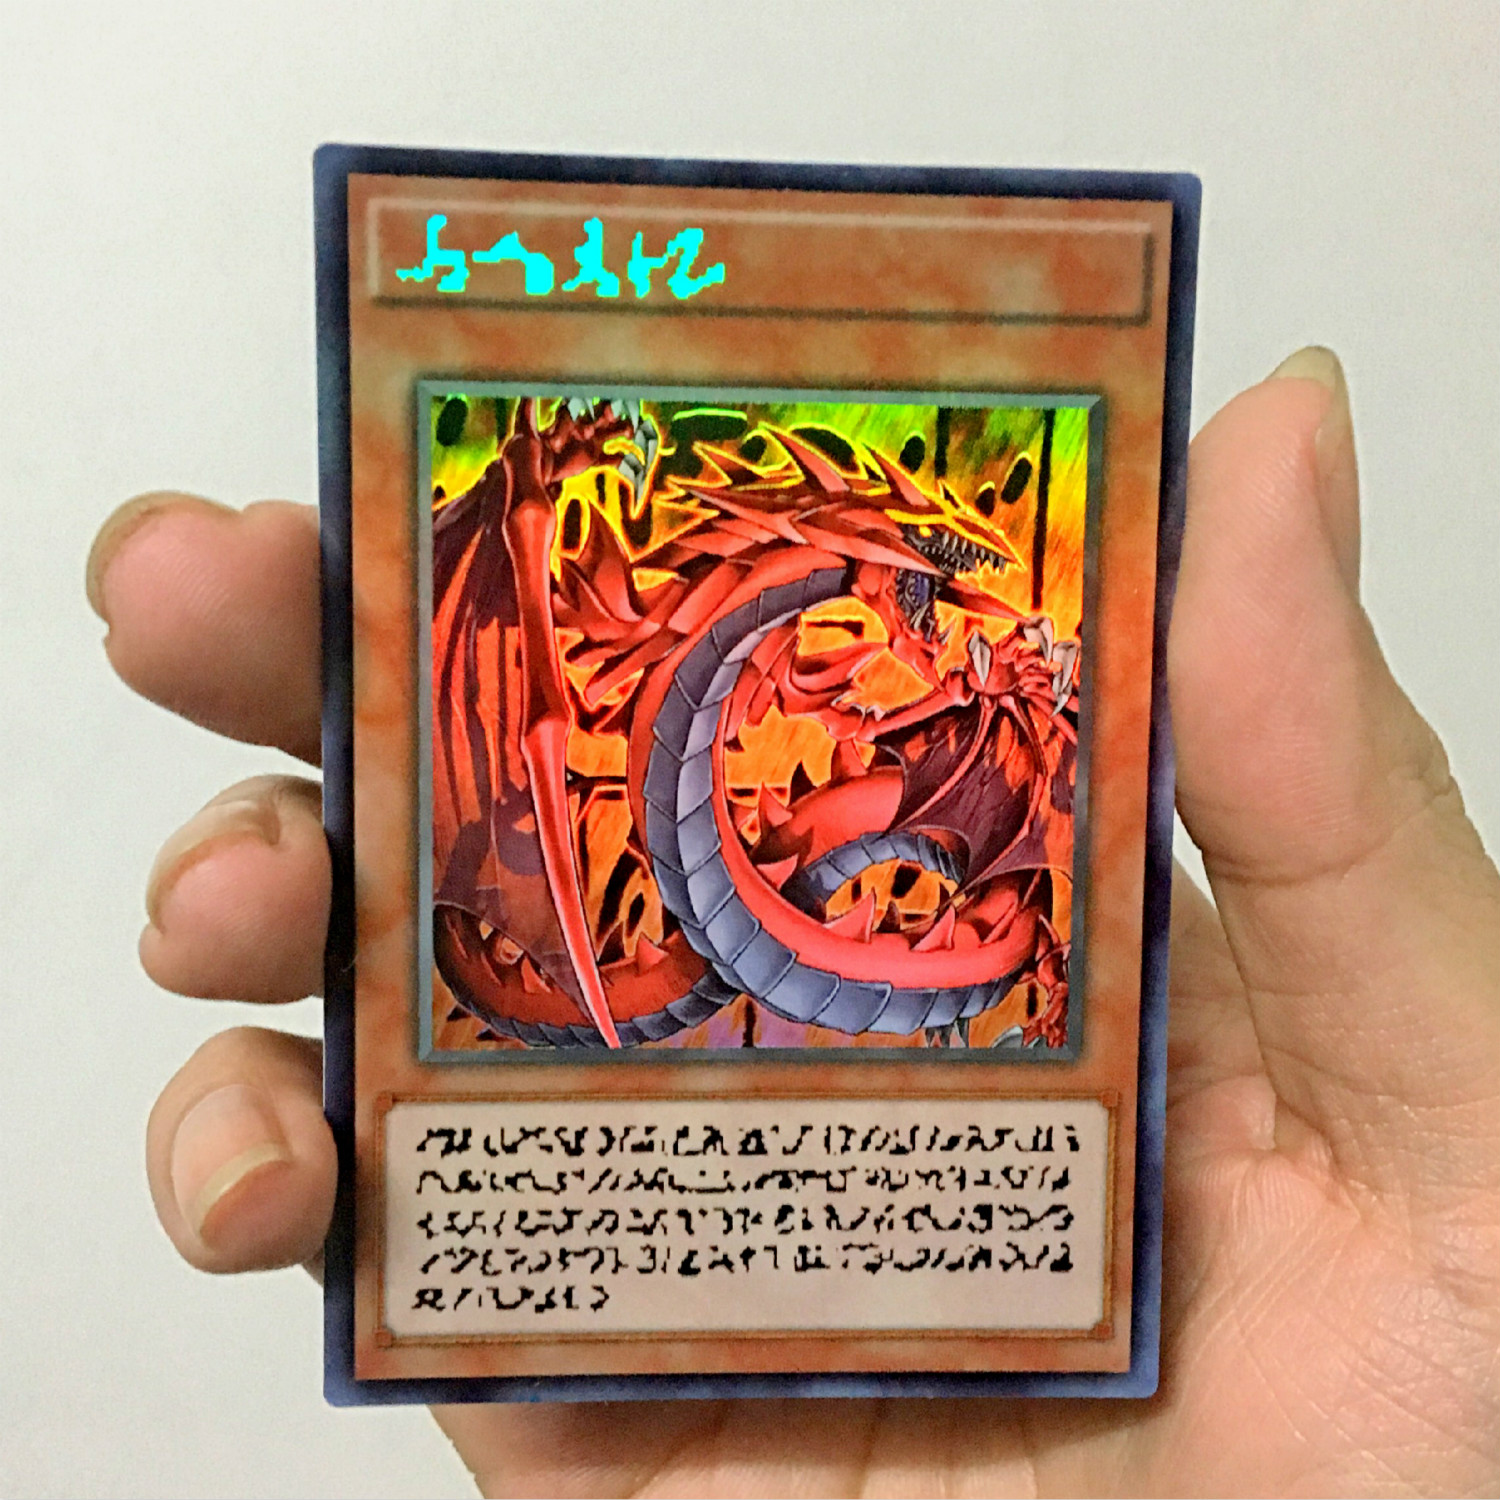 Yu Gi Oh Uria Lord Of Searing Flames DIY Colorful Toys Hobbies Hobby Collectibles Game Collection Anime Cards